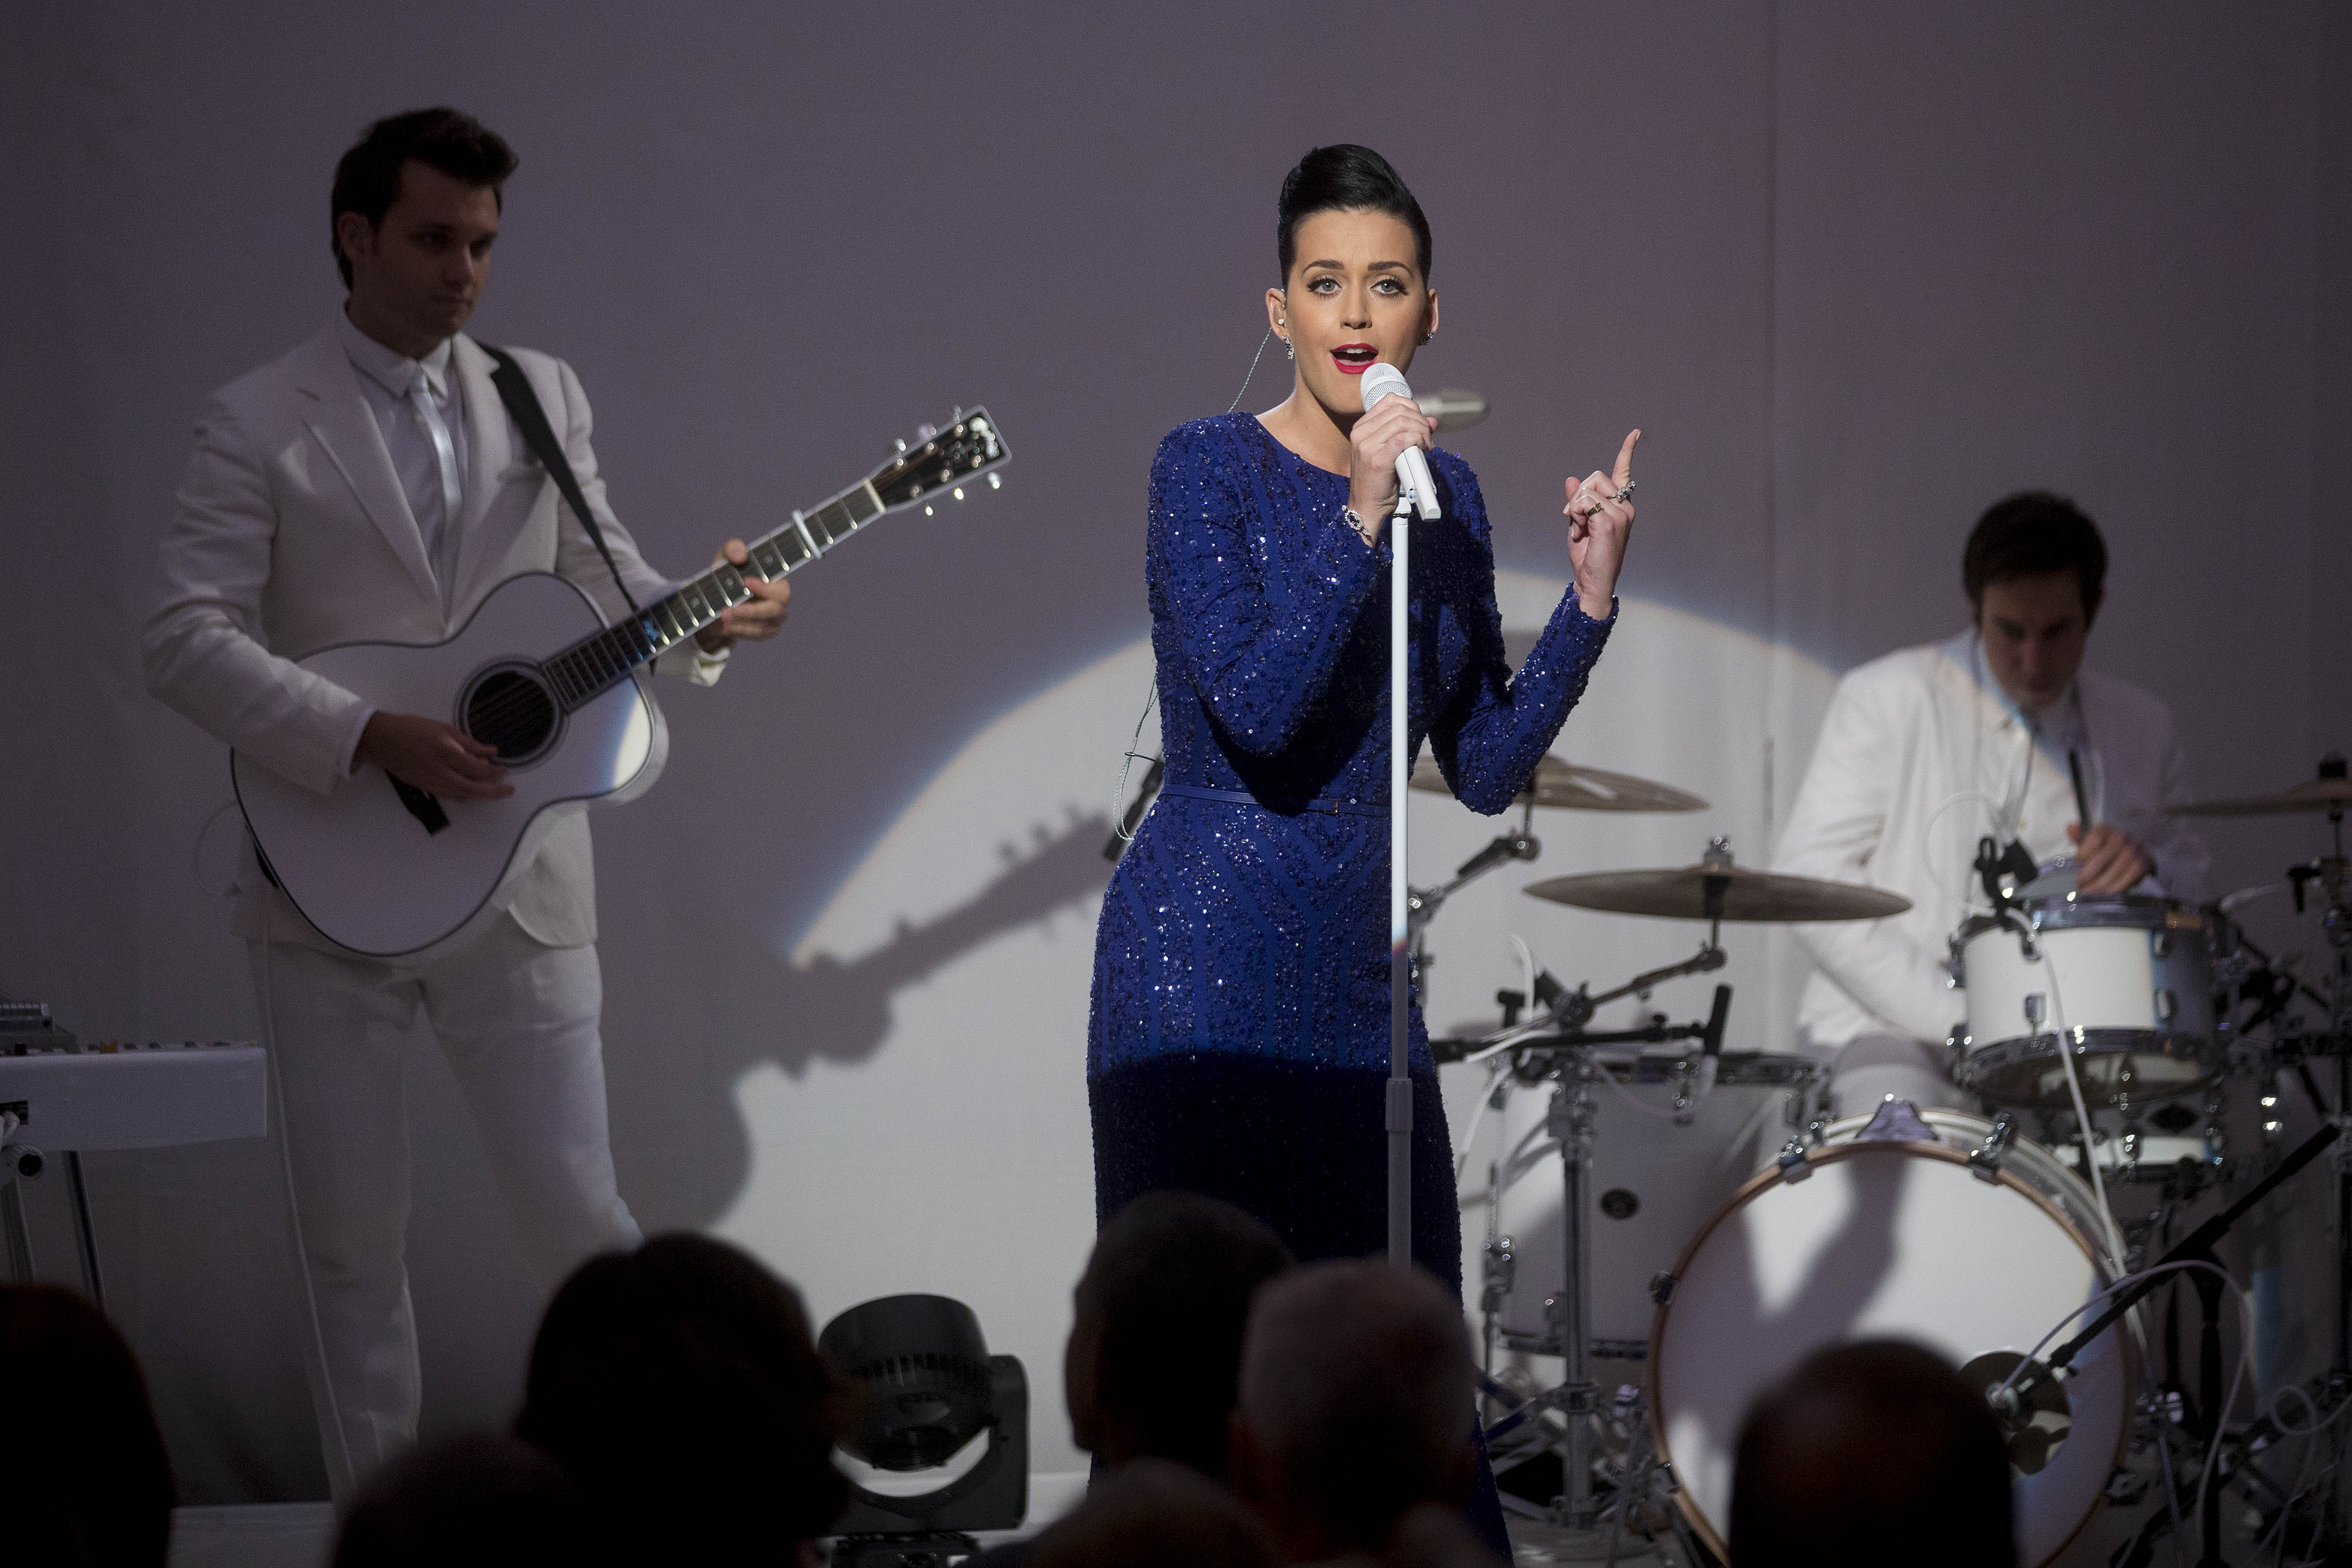 WASHINGTON, DC - JULY 31: (AFP OUT) Singer Katy Perry performs during a concert commemorating the Special Olympics with U.S. President Barack Obama, not pictured, in the State Dining Room of the White House on July 31, 2014 in Washington, D.C. Founded in 1968 by Eunice Kennedy Shriver, the Special Olympics movement has grown to more than 4.4 million athletes in 170 countries. (Photo by Andrew Harrer-Pool/Getty Images)